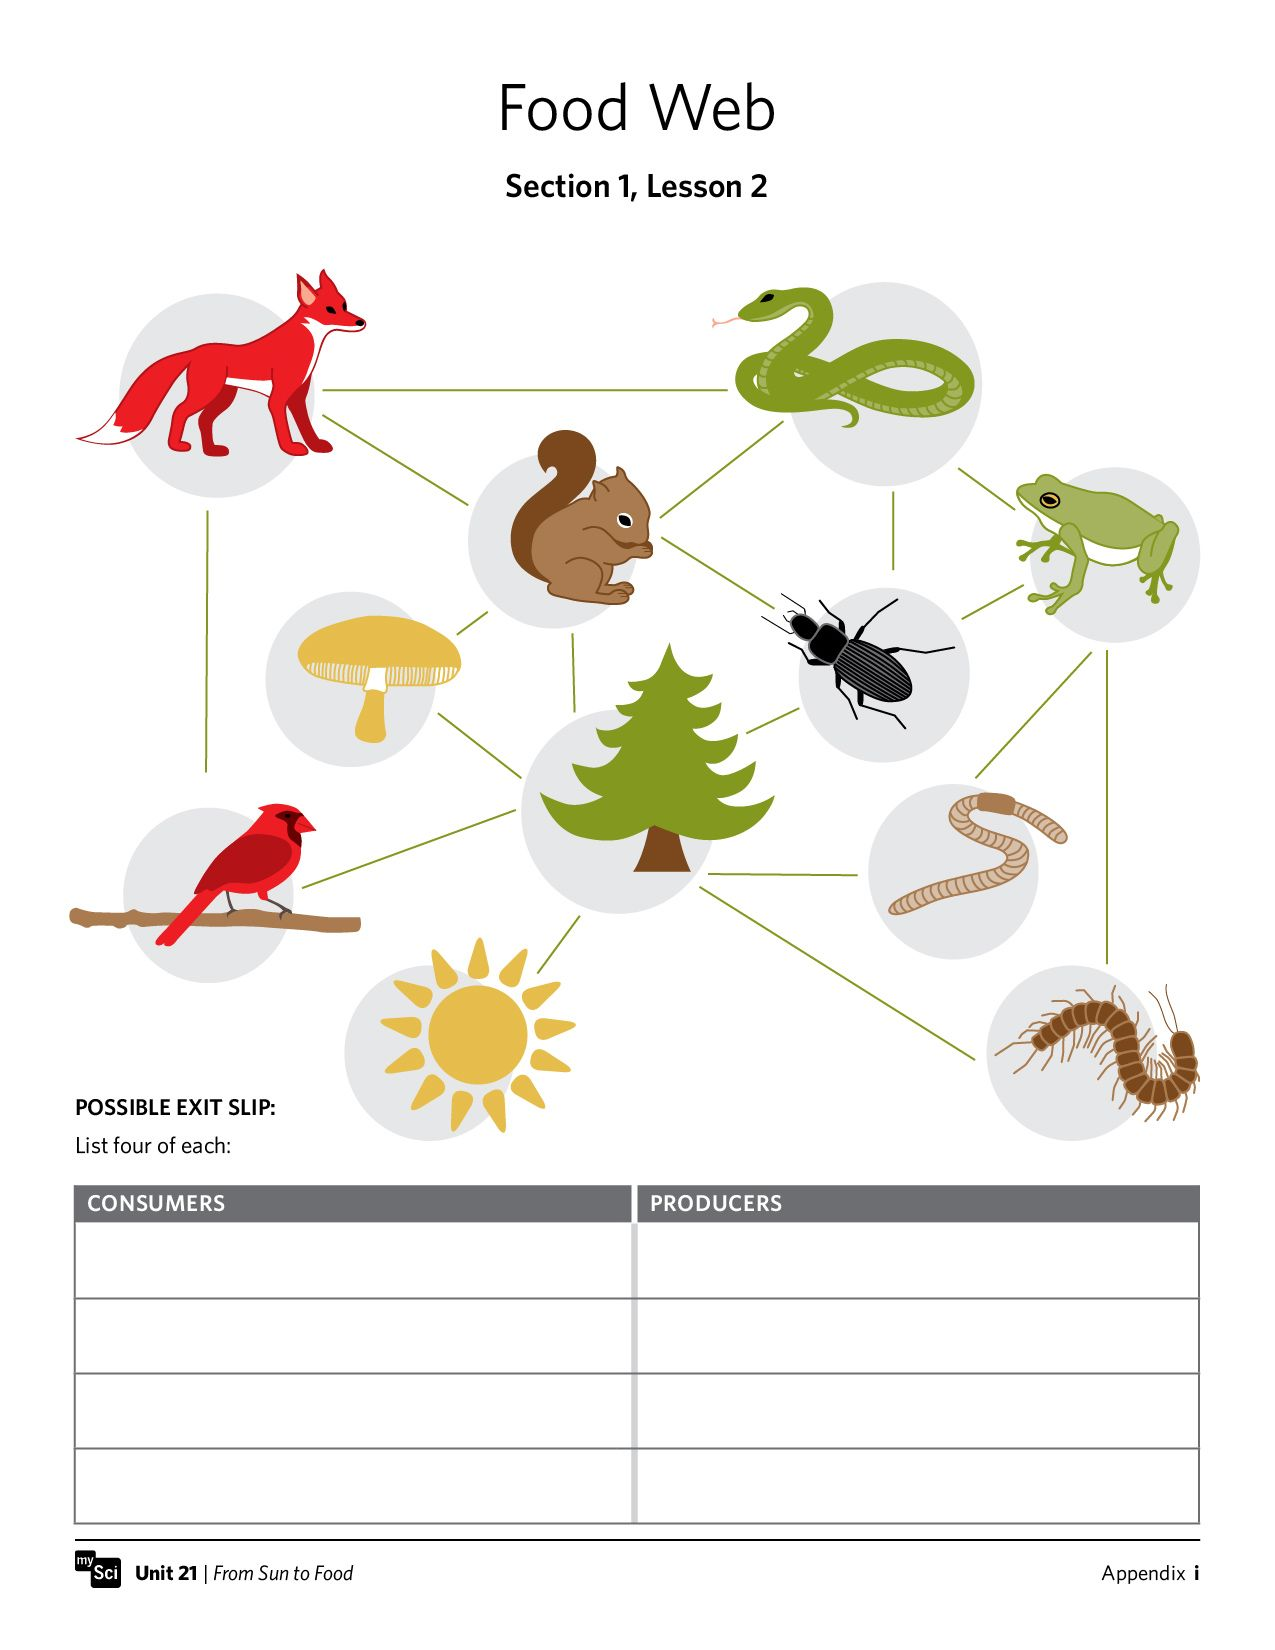 Mysci unit 21 from sun to food preview food webs worksheets life science photosynthesis respiration and ecosystems how do energy and matter flow through an ecosystem pooptronica Image collections